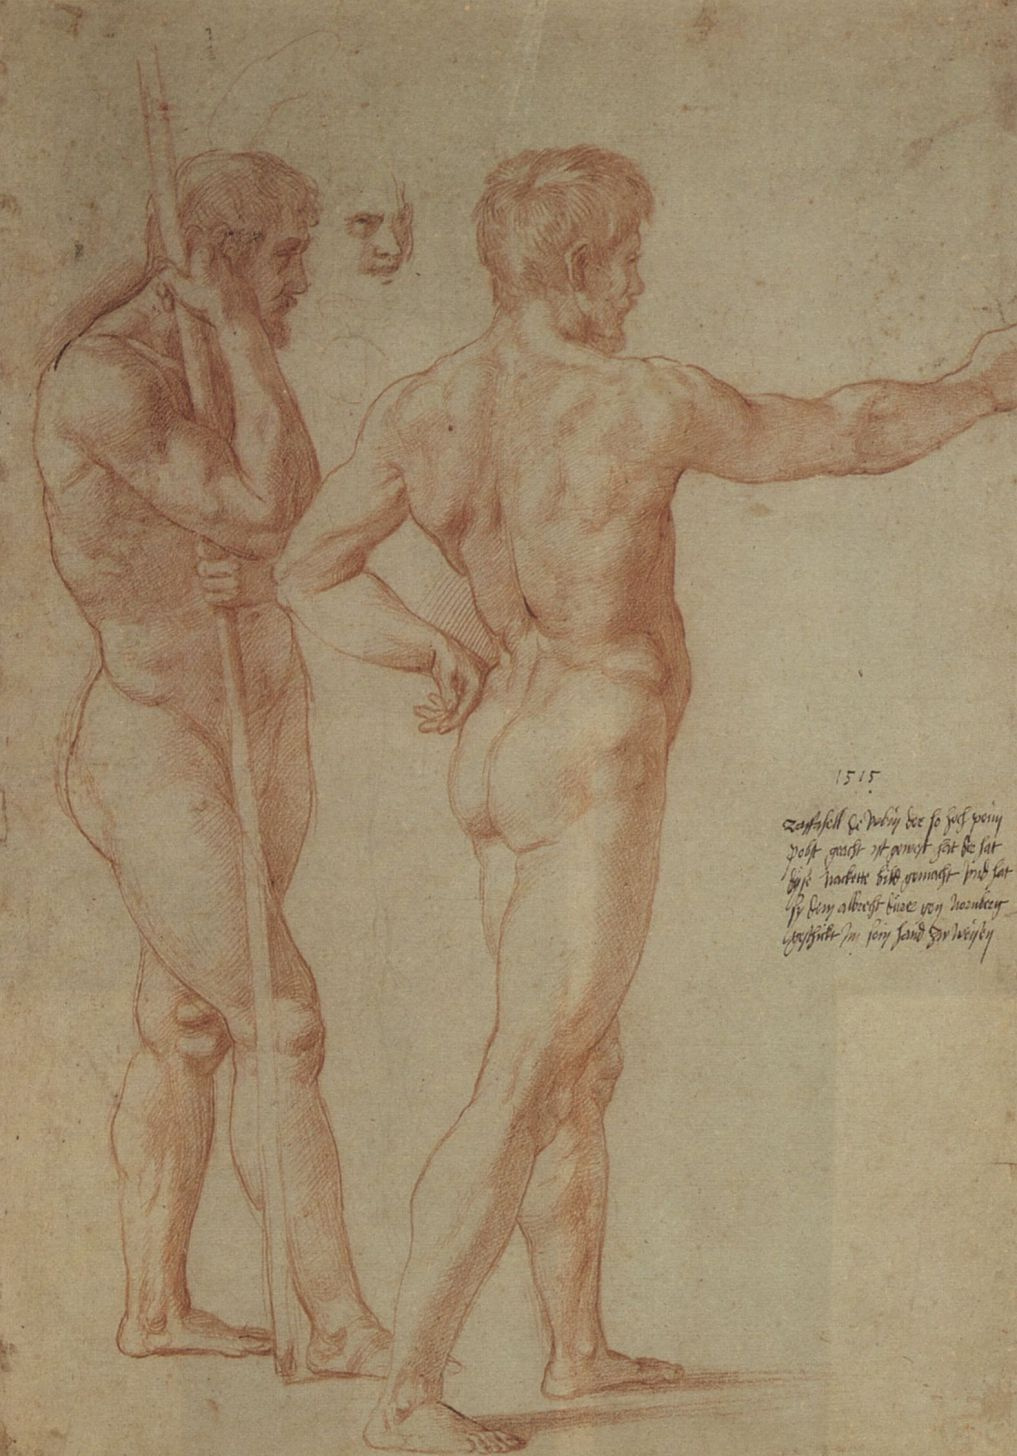 """Raphael Sanzio. Sketch for the fresco """"the Battle of Ostia"""". Sketches of two Nude models"""